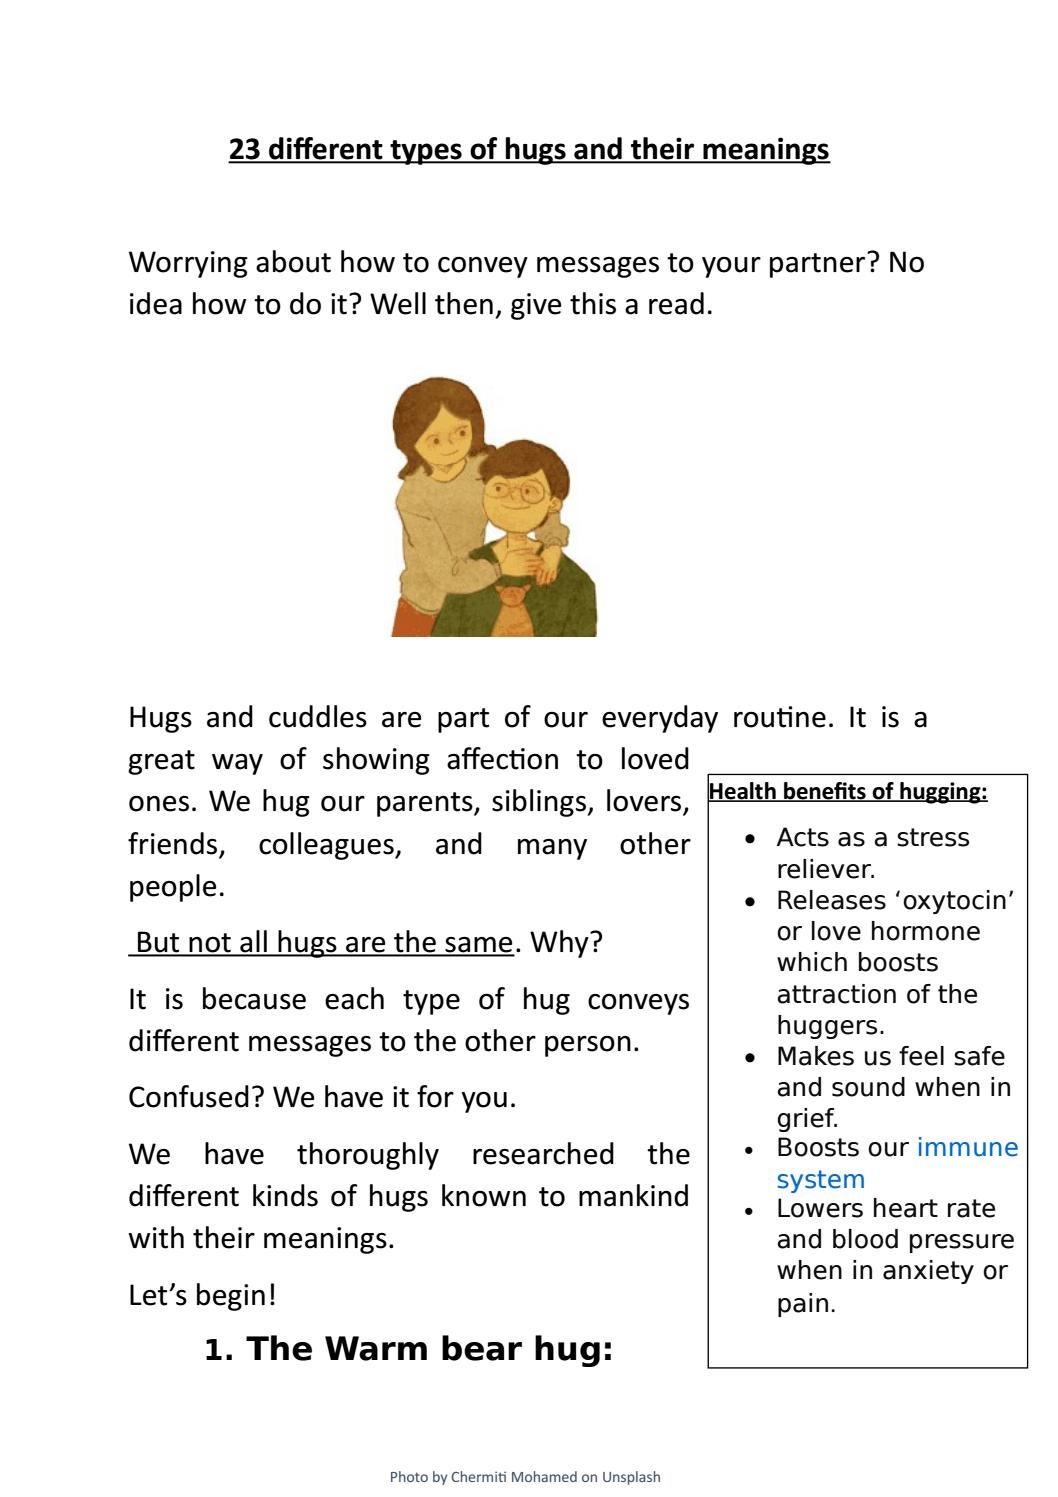 Hugs types and meanings of their 9 Different